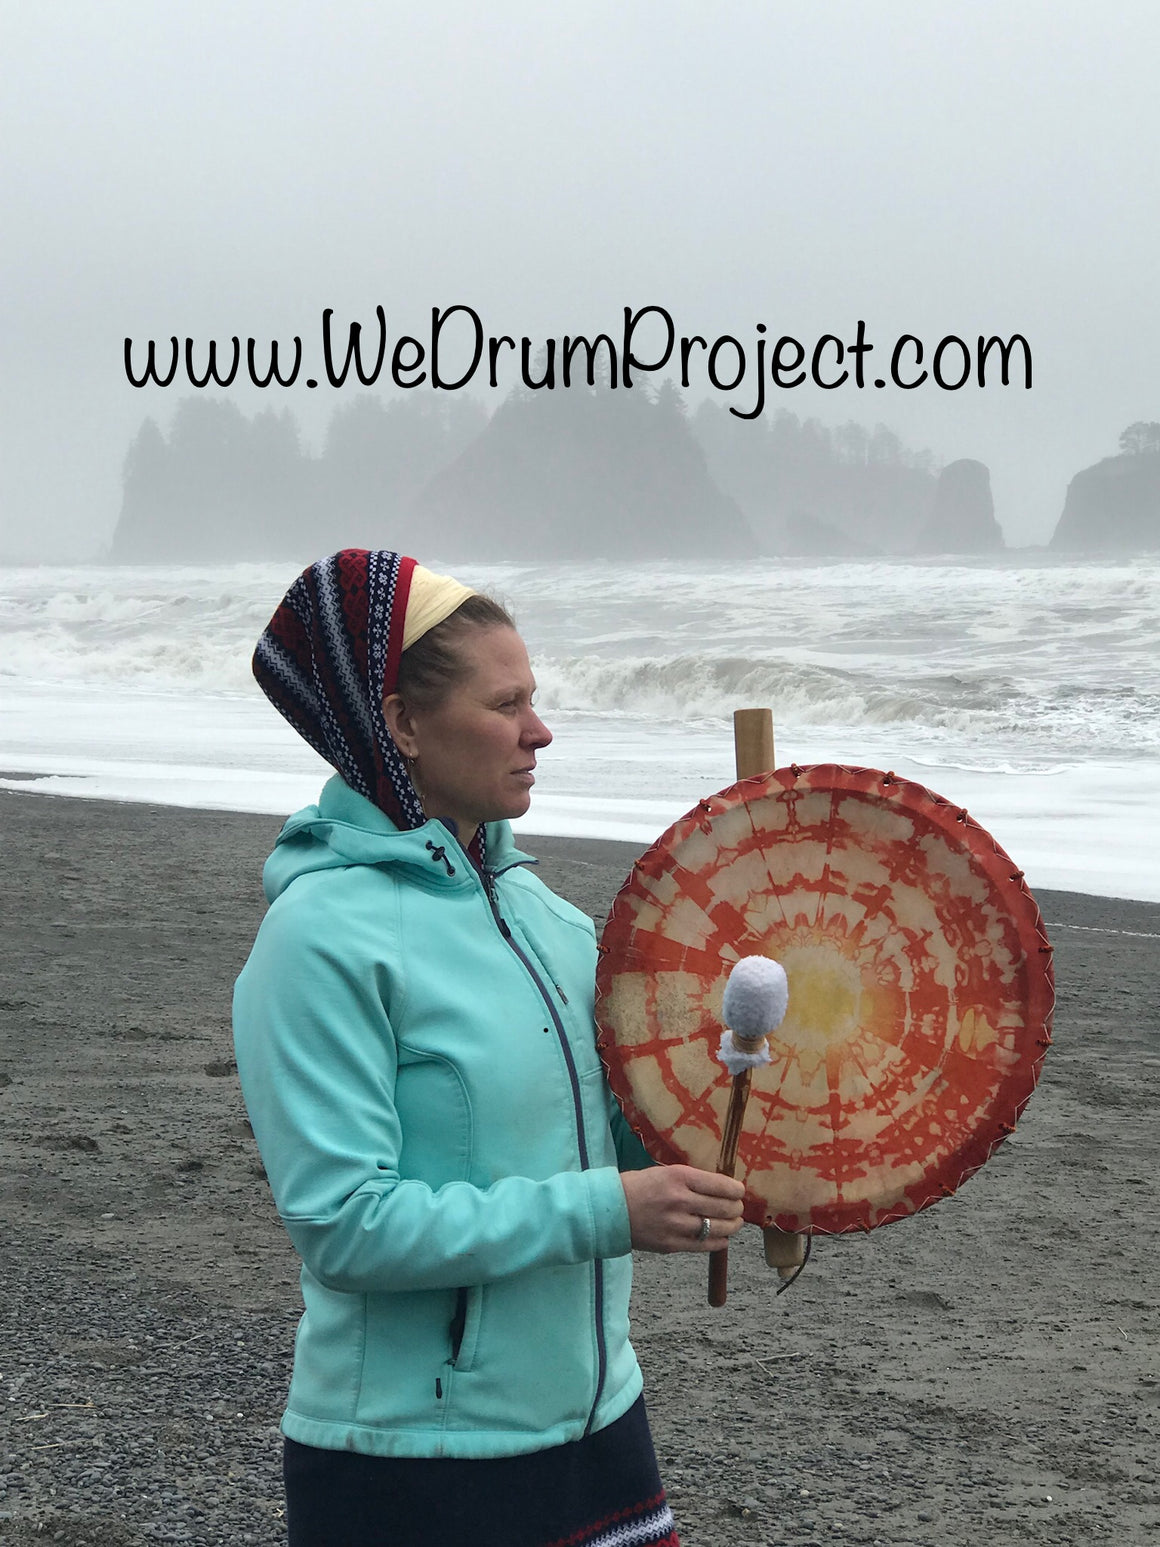 February 16, 2020 - Sunday 12:30-2pm - Healing Drum Circle - with Ila Barlean & We Drum Project